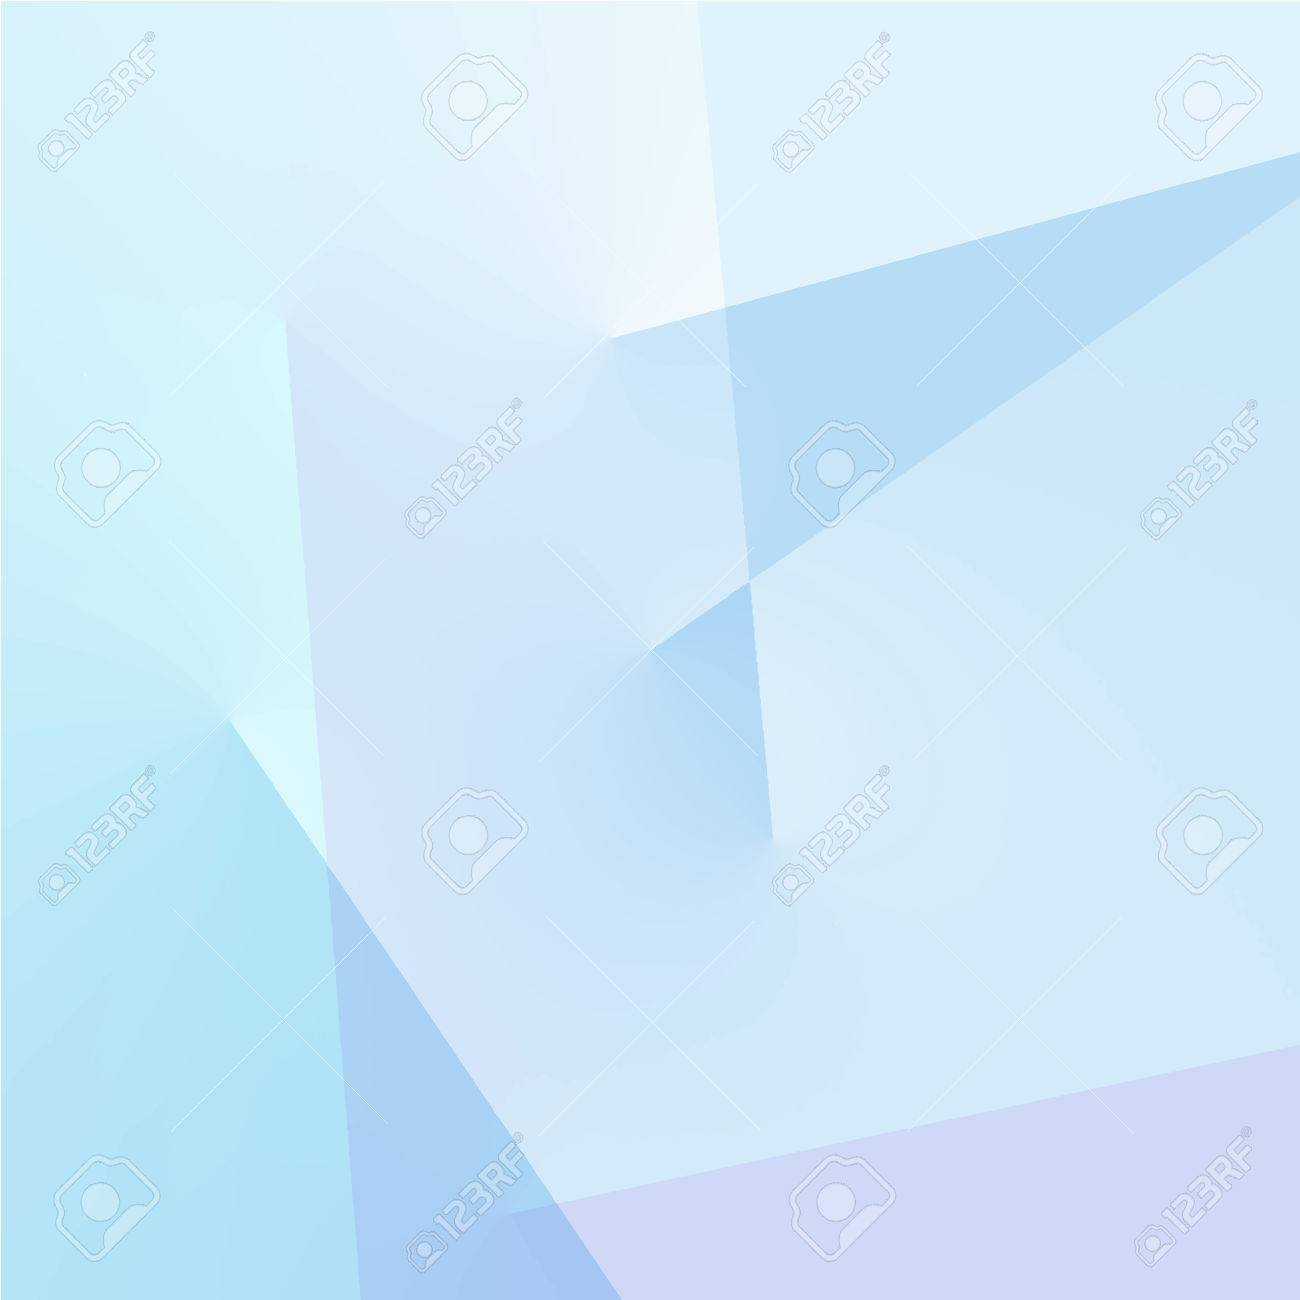 . Abstract blue geometric background with lines in pastel colors